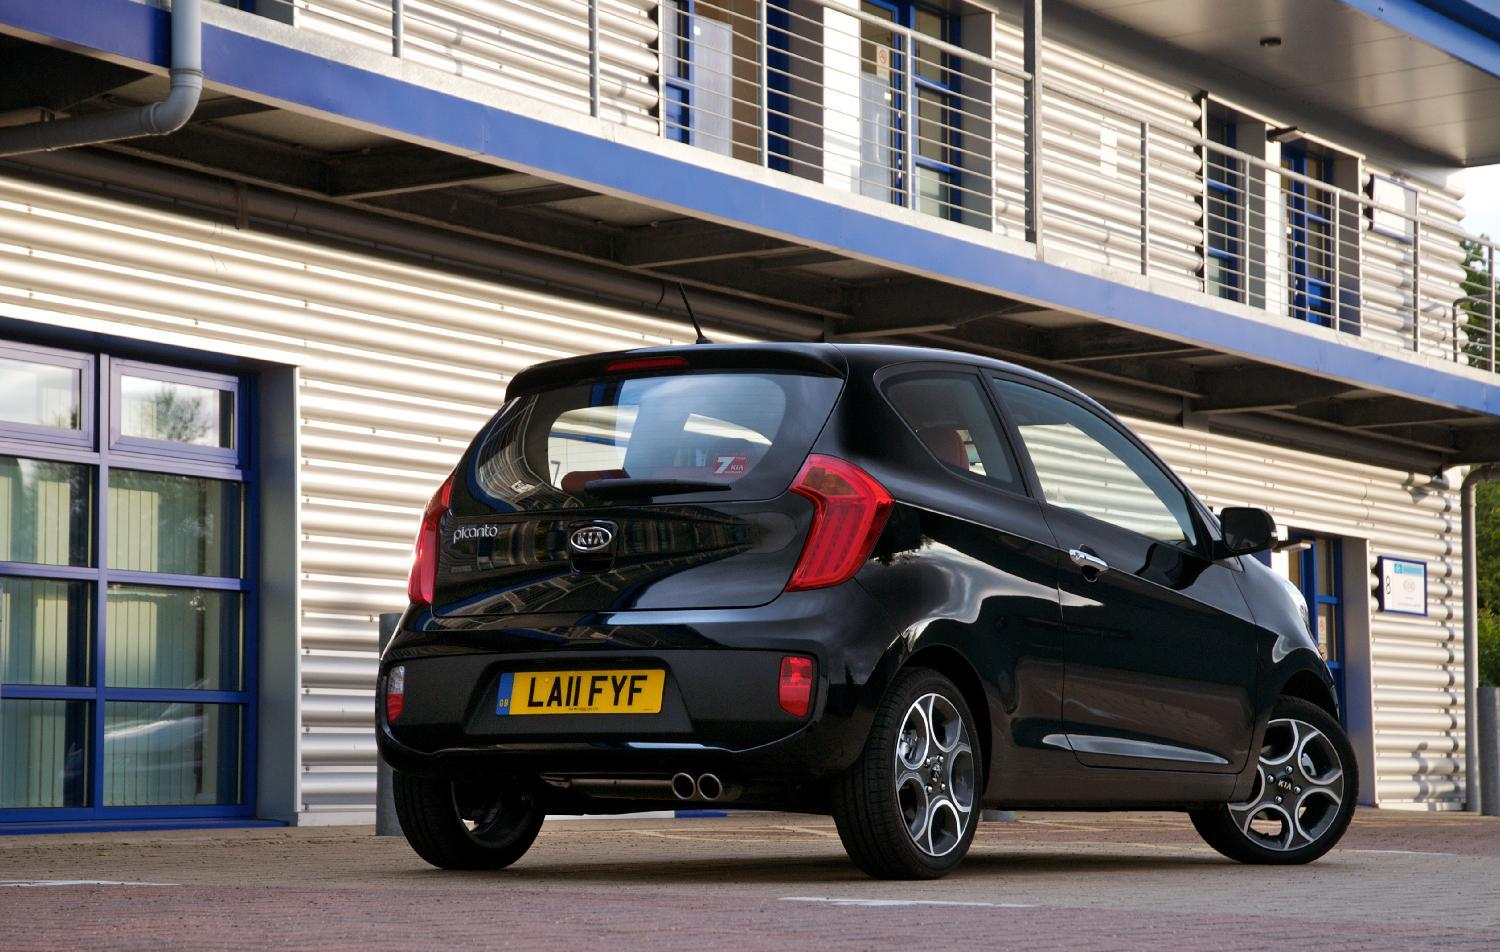 Photo Gallery: 2012 Kia Picanto 3dr